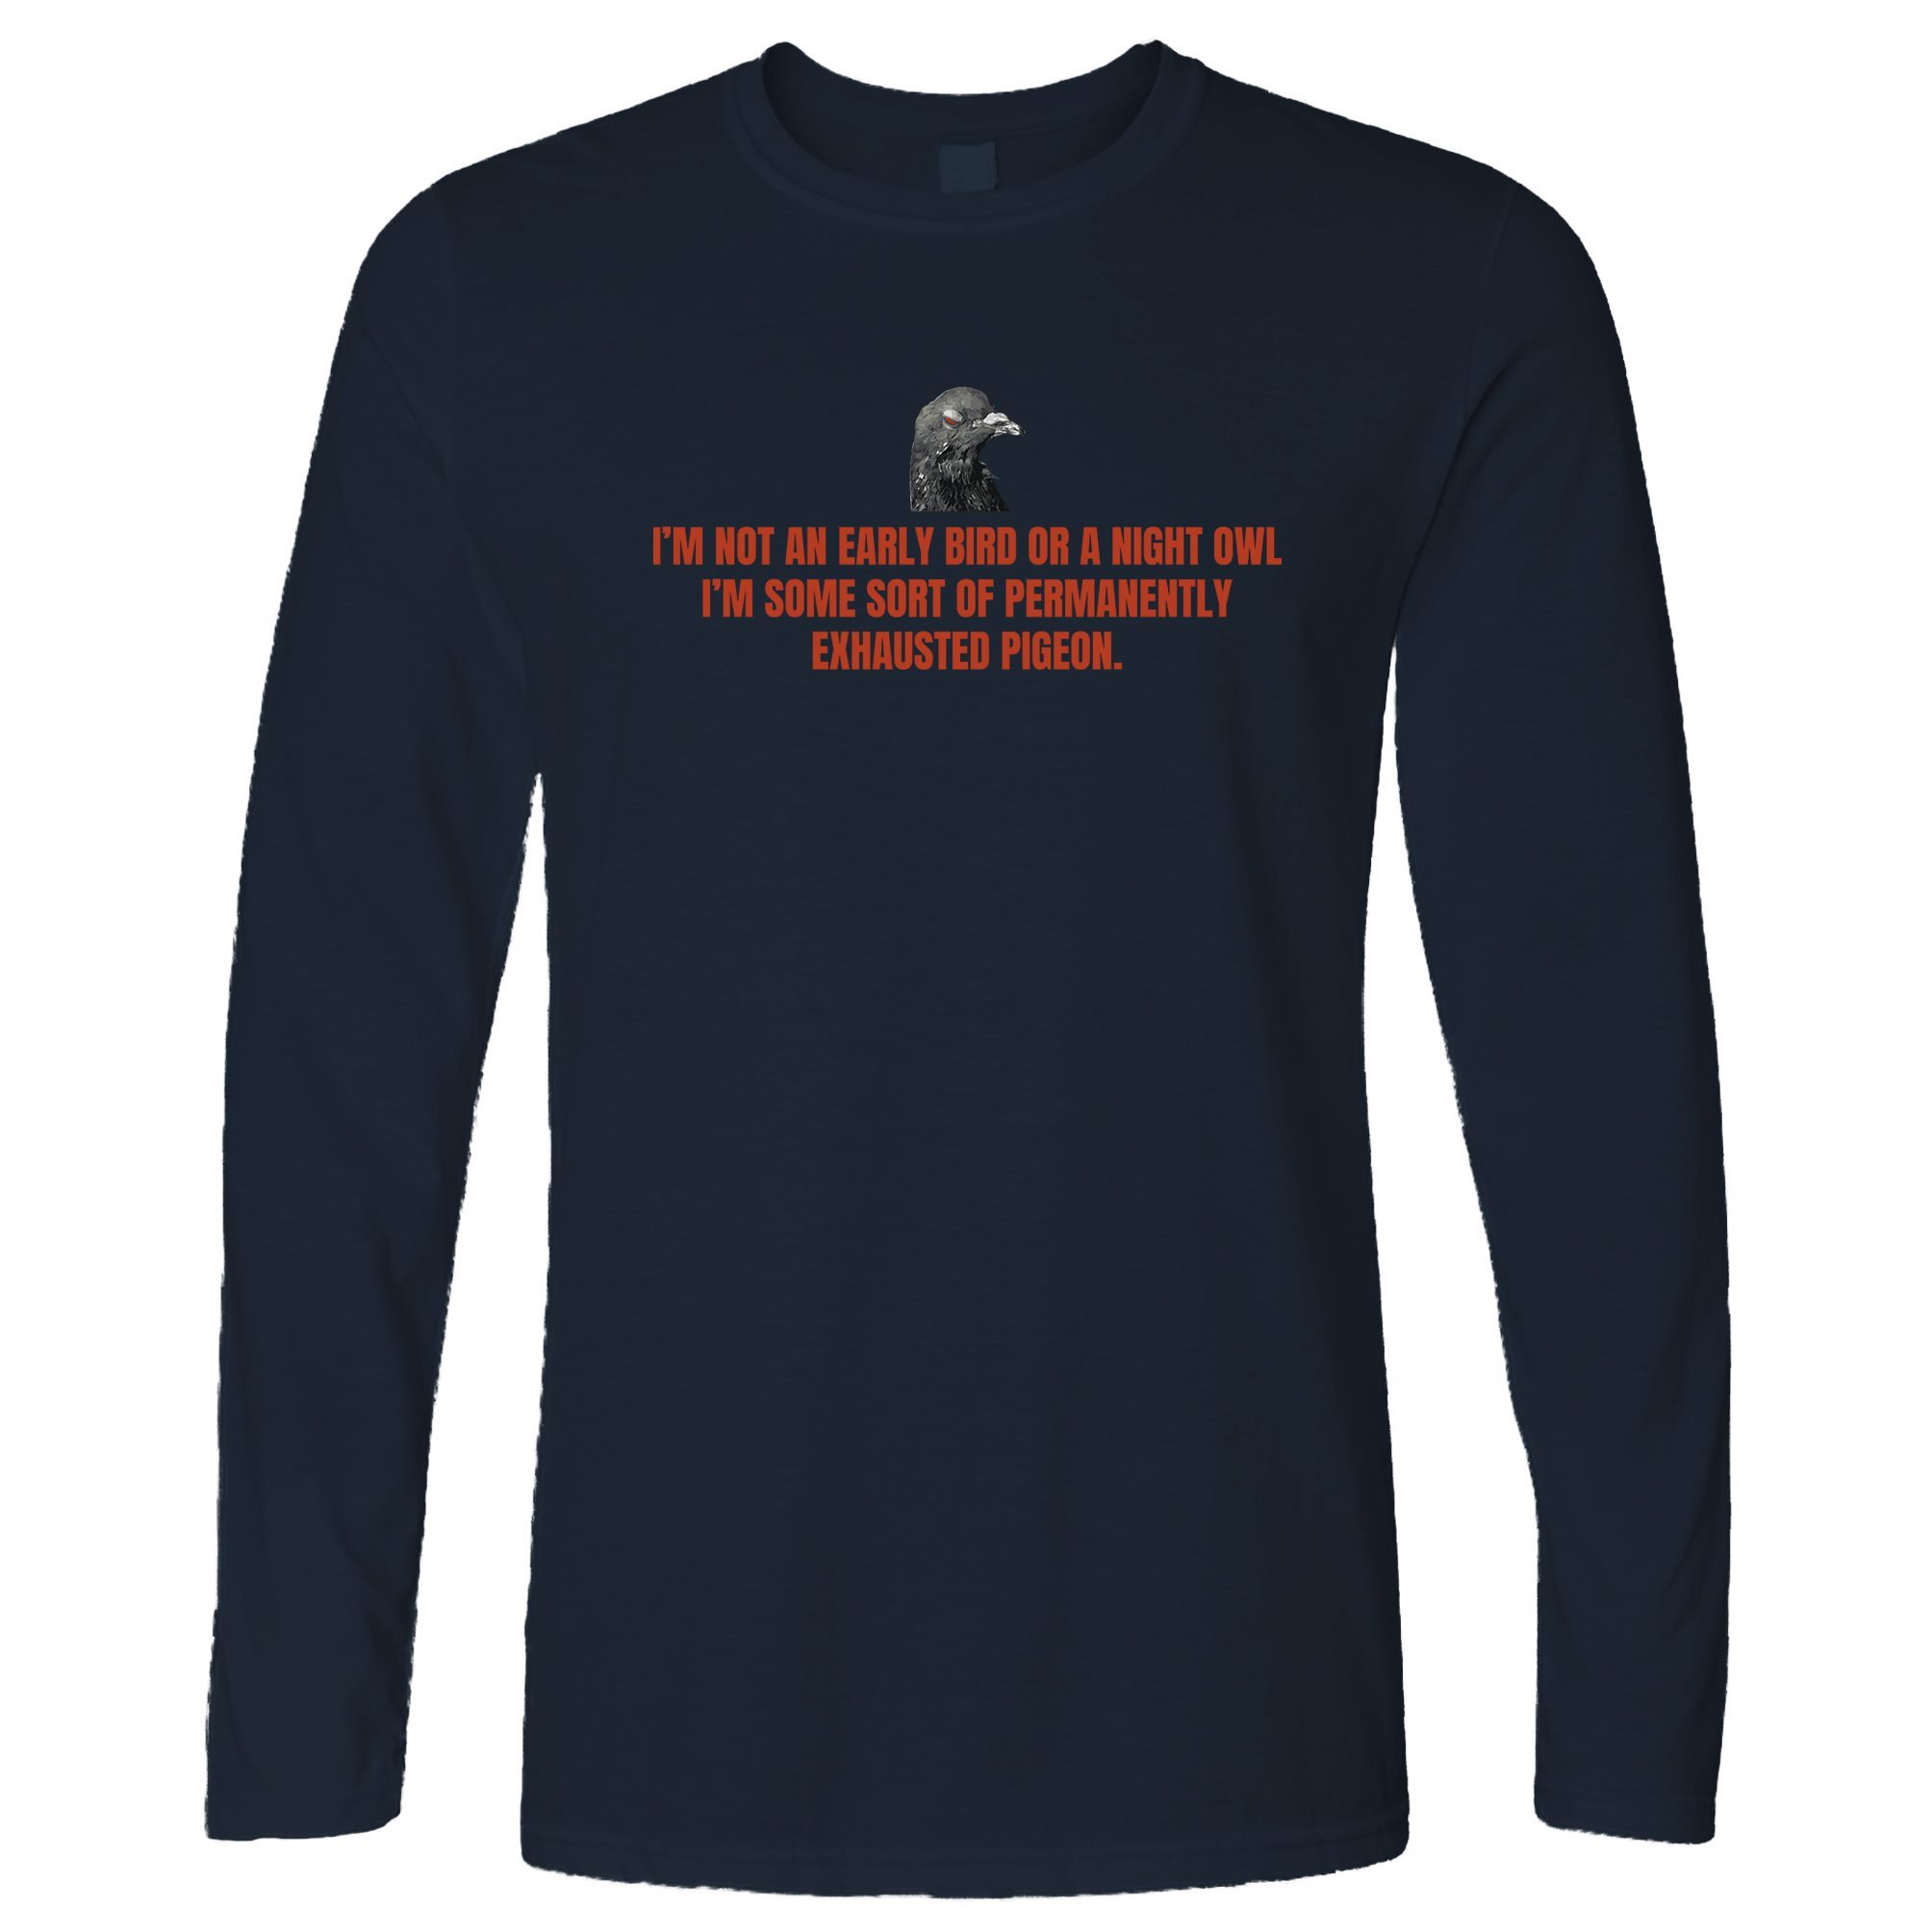 Novelty Long Sleeve Permanently Exhausted Pigeon Slogan T-Shirt